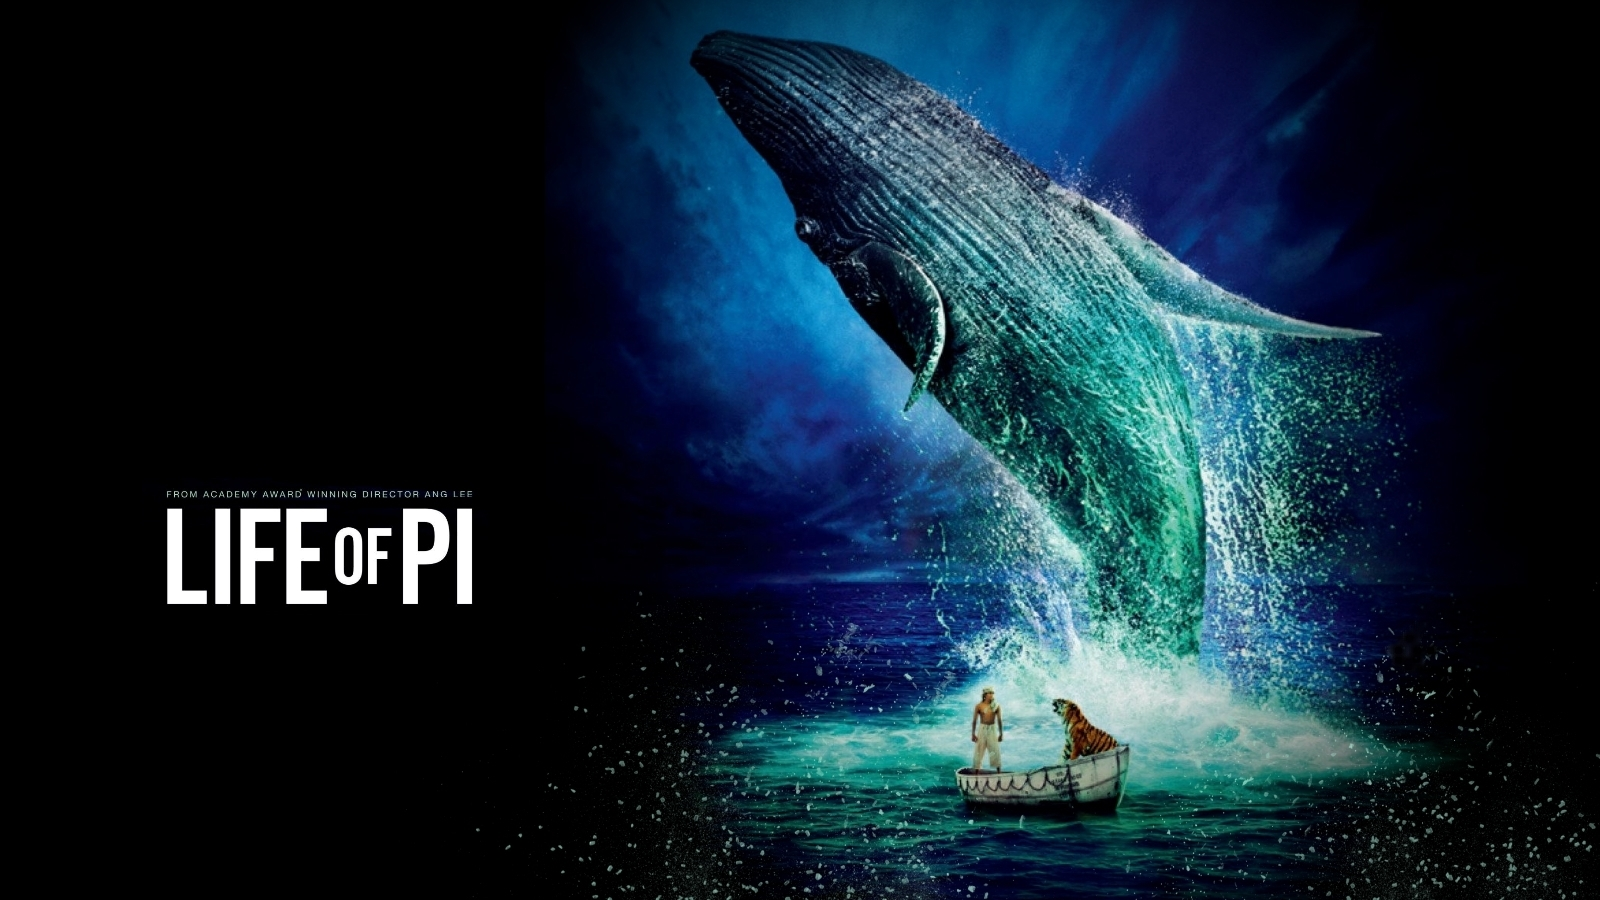 http://2.bp.blogspot.com/-1WV0SweOreU/UMZMSvMgIGI/AAAAAAAATt8/jstLbhVQdVQ/s1600/Life_Of_Pi_Movie_Wallpaper_1600x900.jpg